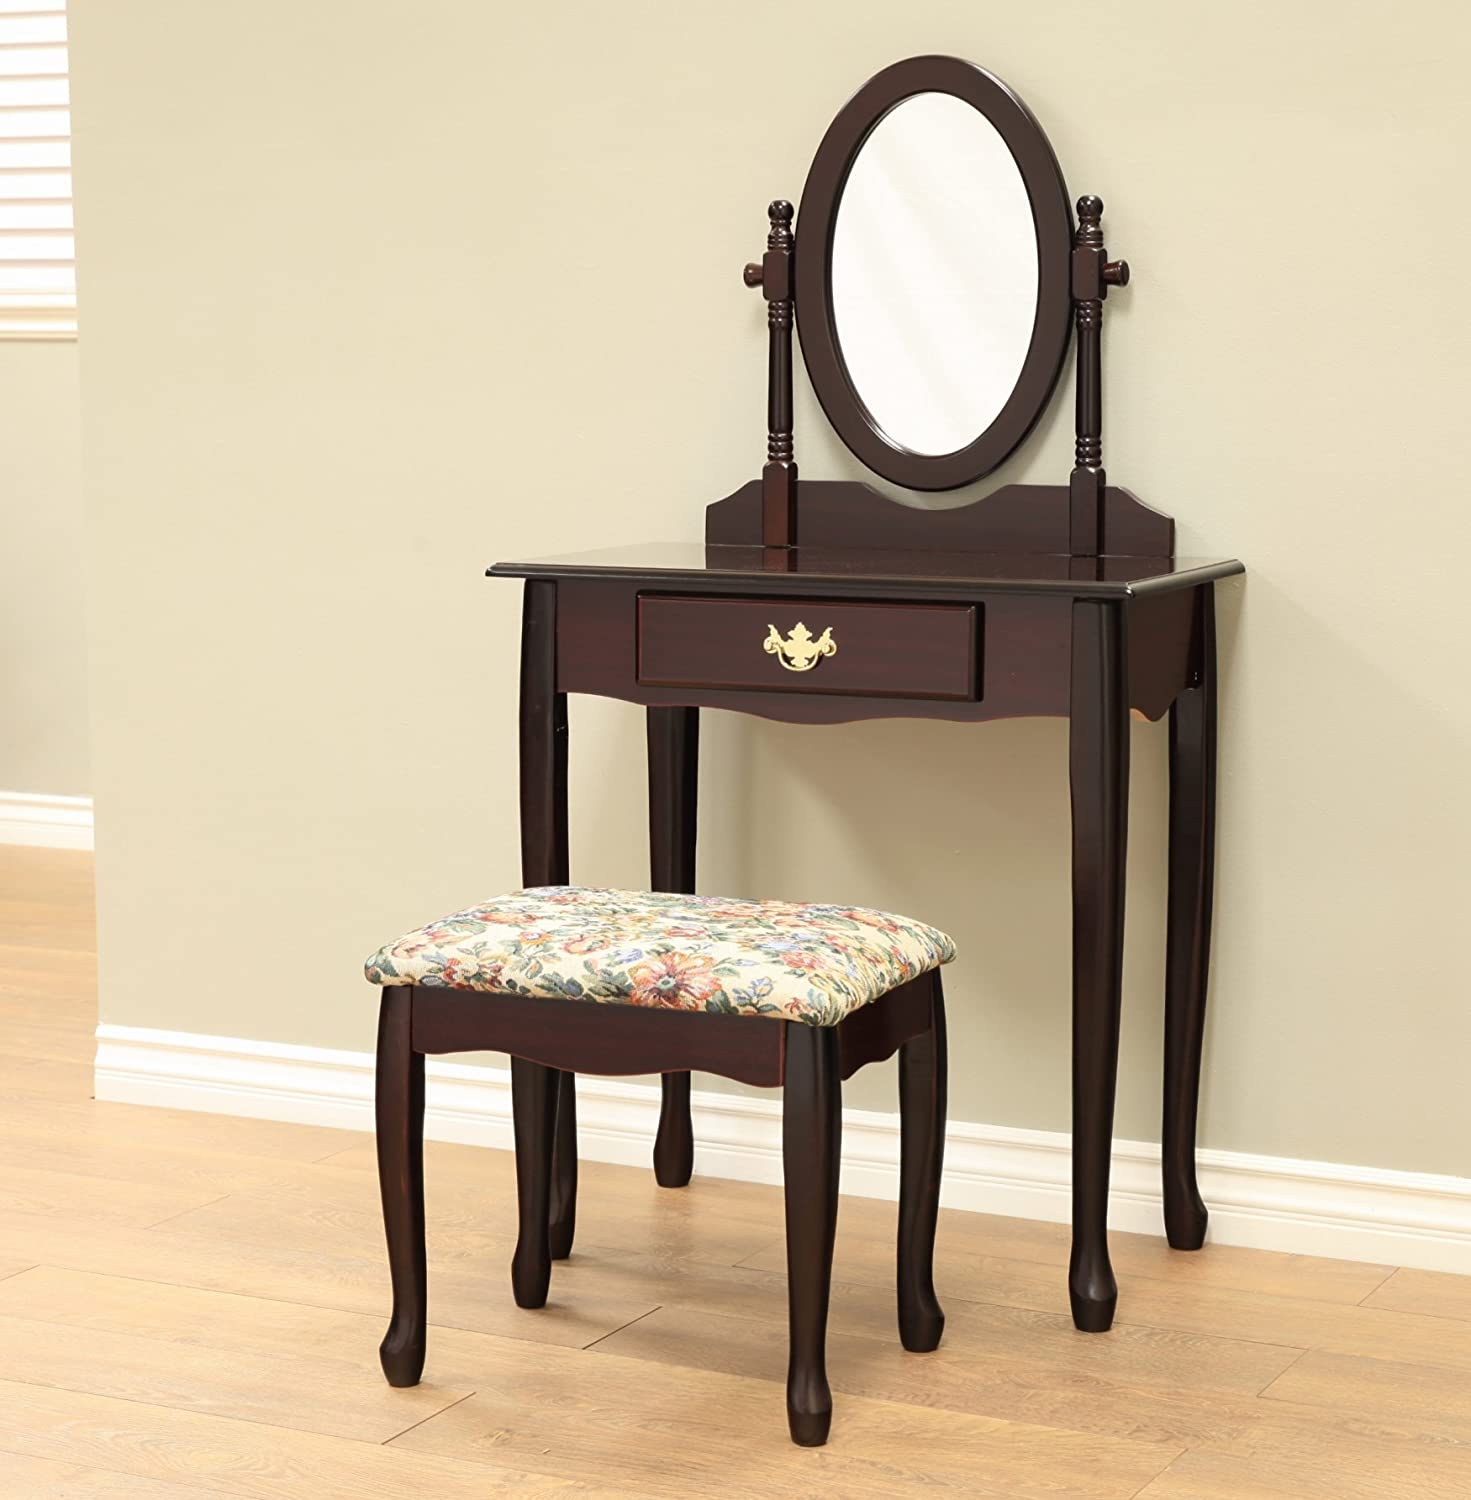 Frenchi Home Furnishing Twopiece Vanity Set with Queen Anne Design Rich Cherry Finish, Espresso